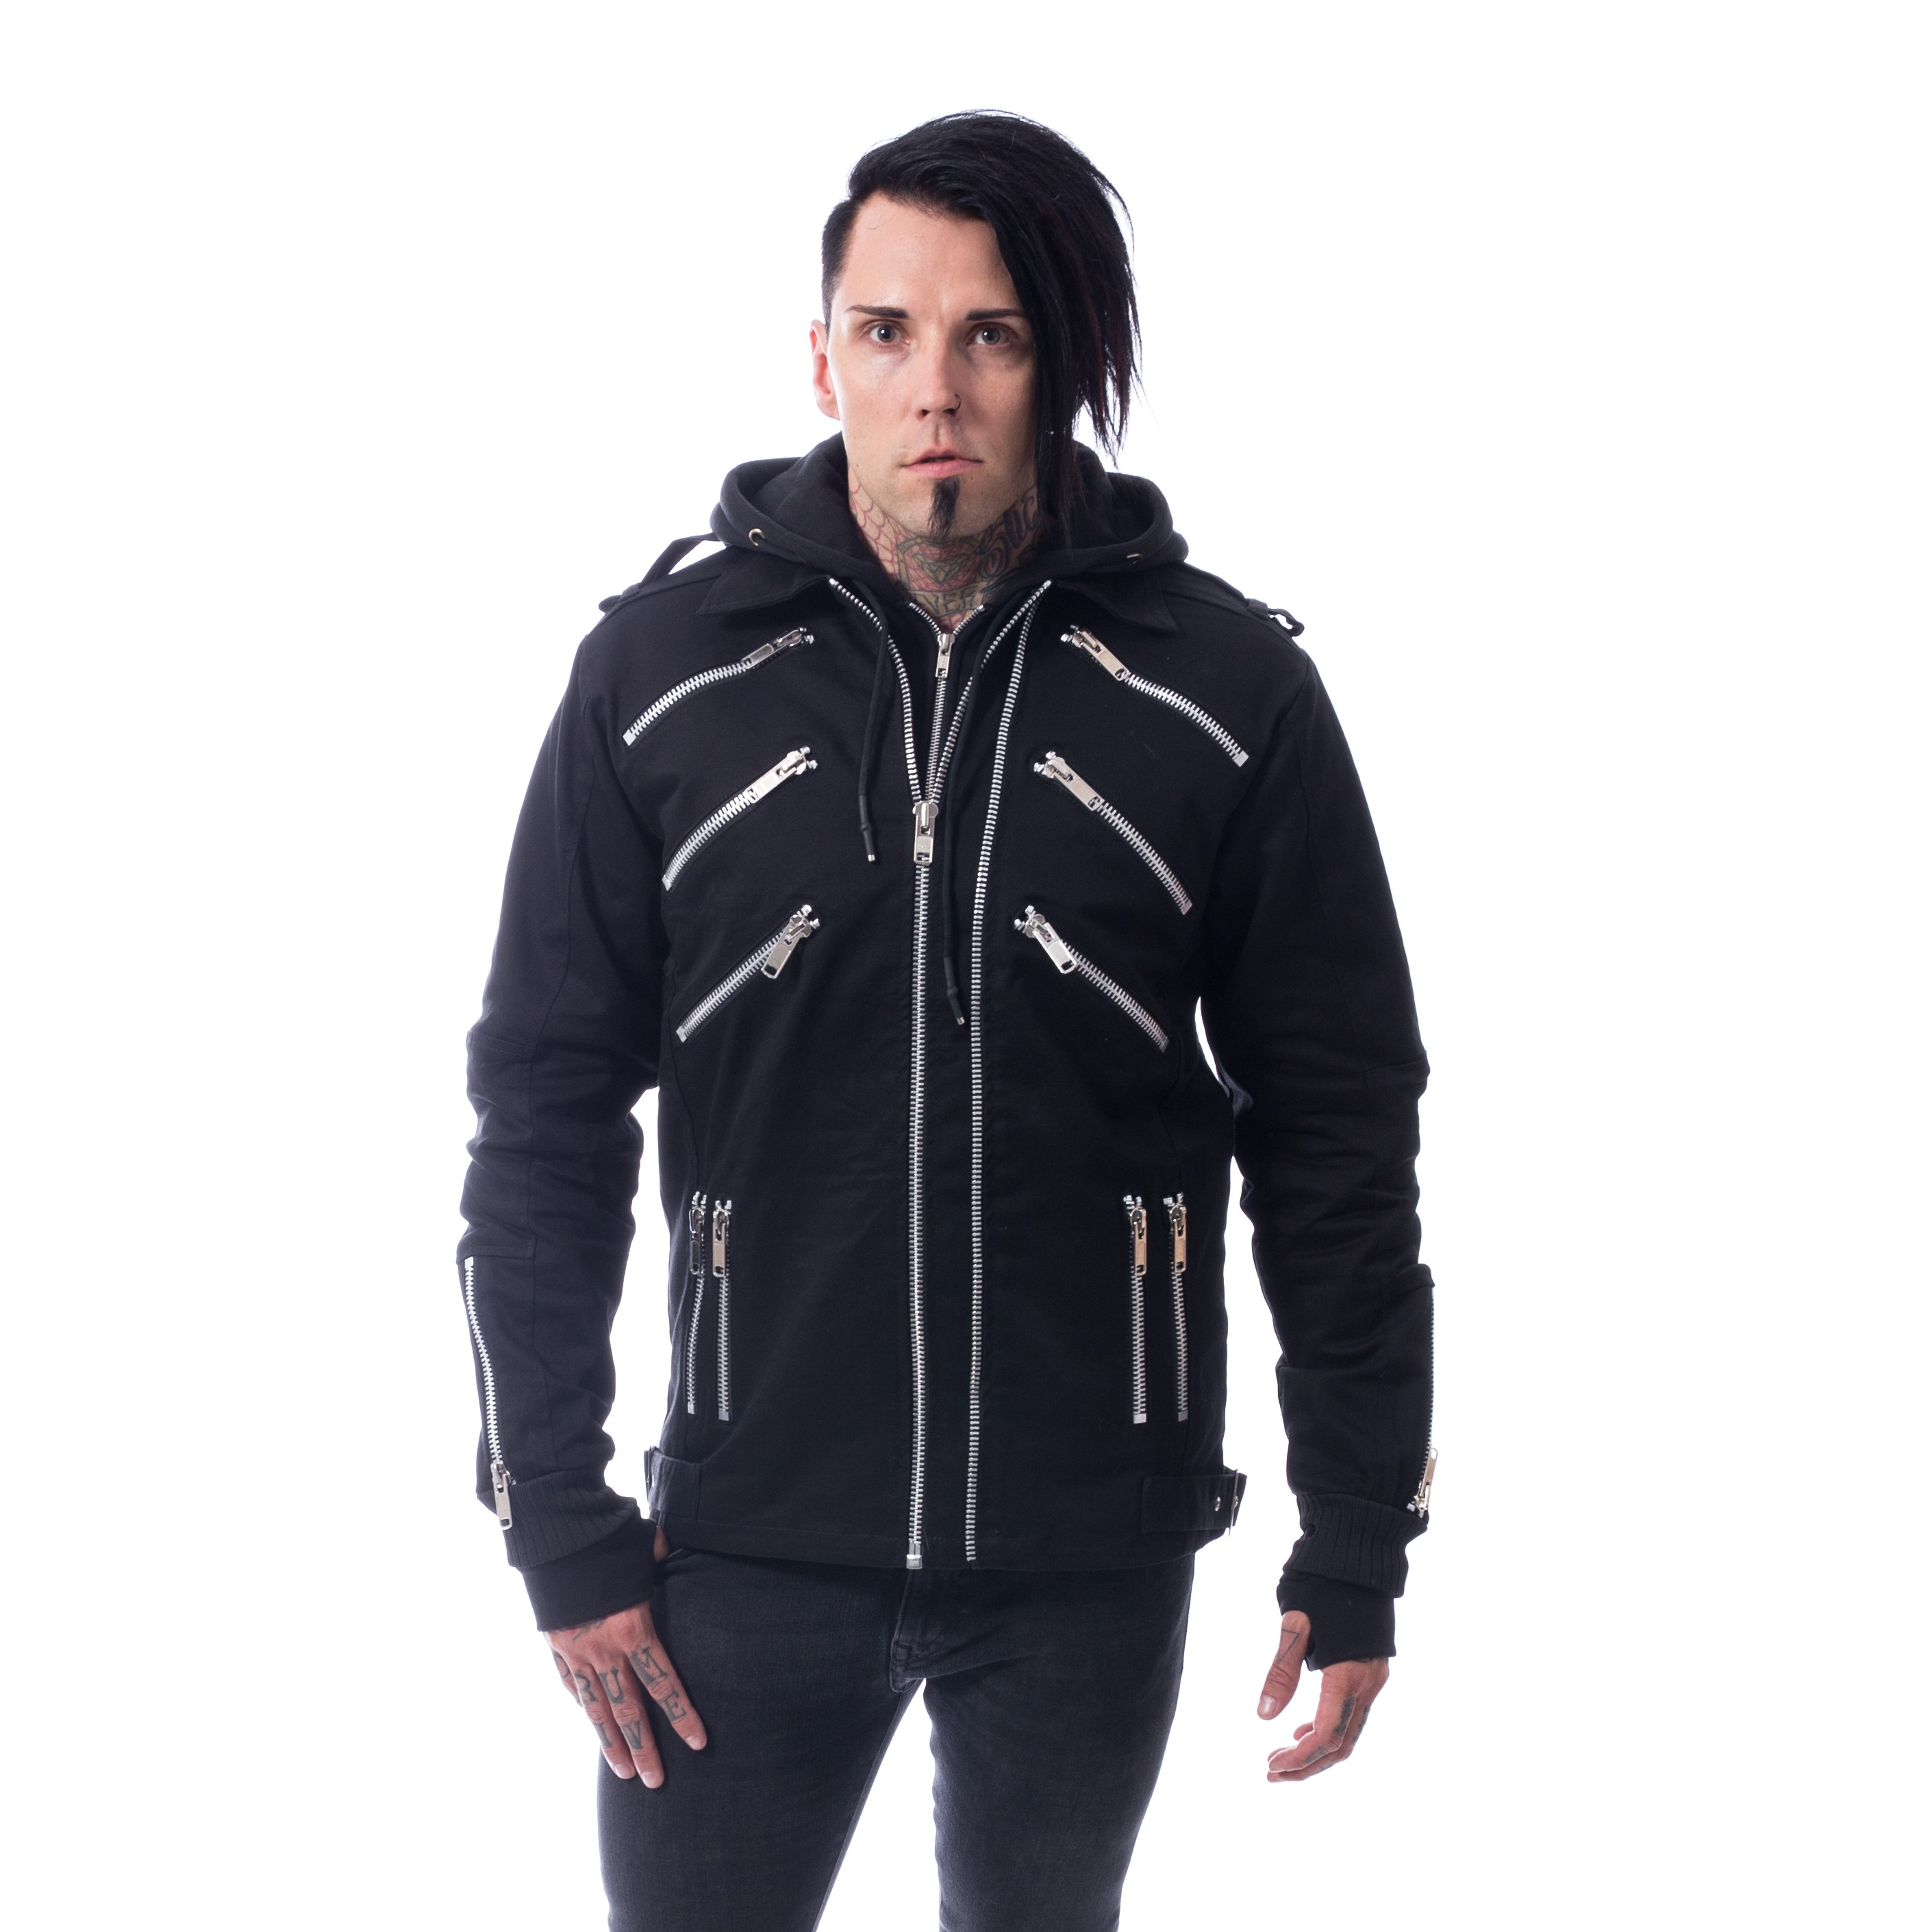 VIXXSIN - Brando Jacket Mens Black *a1